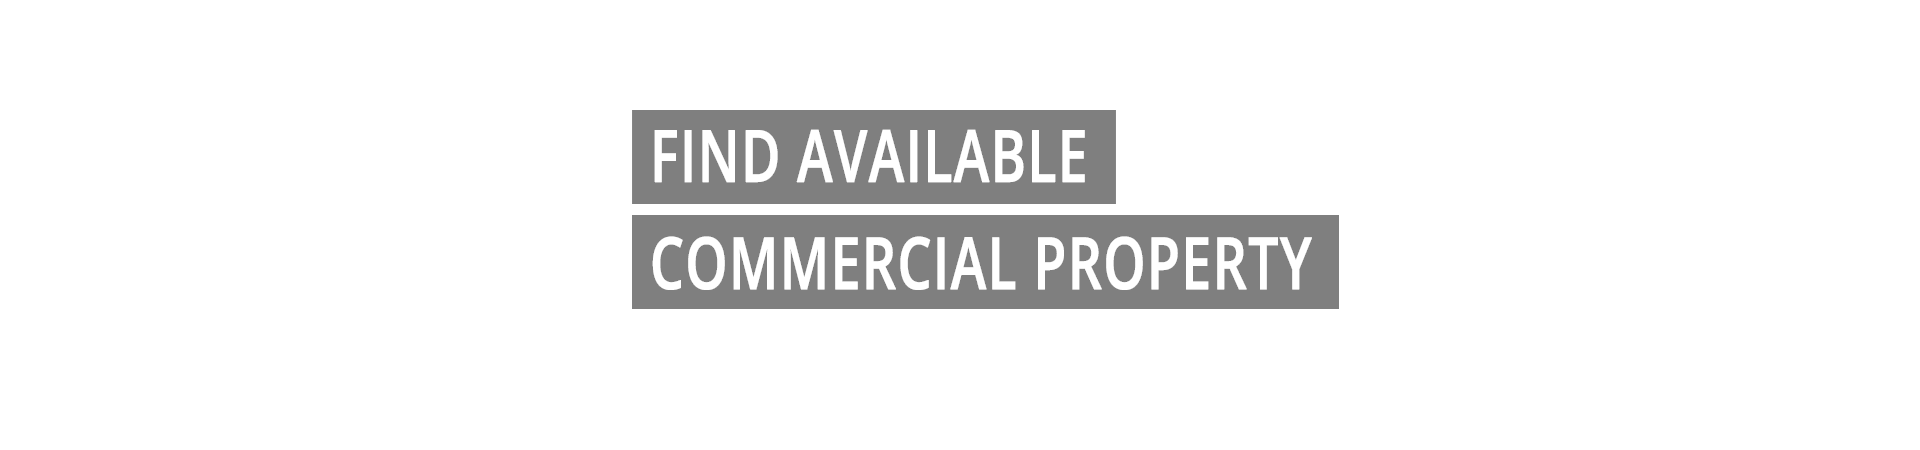 Find Available Commercial Property